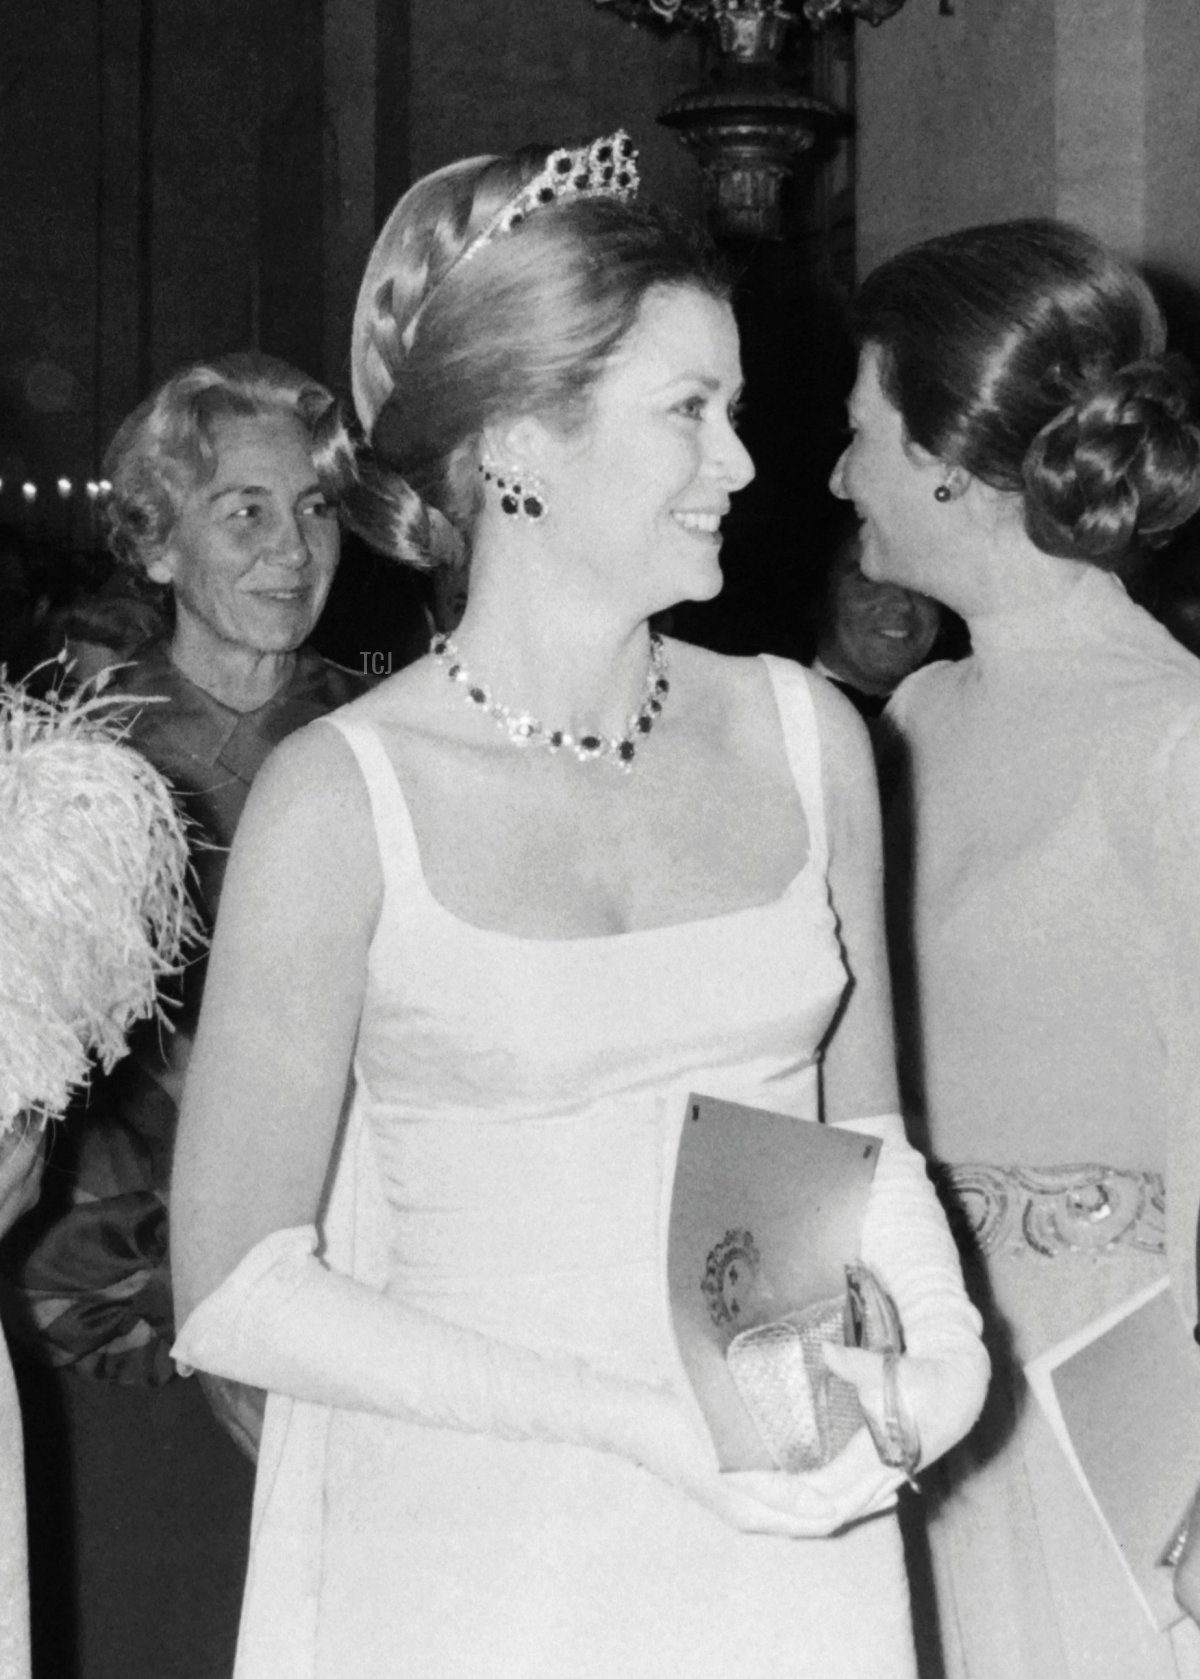 French Secretary of State Jean de Lipokowski, Baroness Philippine de Rothschild, Princess Grace of Monaco and French deputy Michel Debré attend a gala event, for the renovation of the Palace of Versailles, on November 28, 1973 in Versailles